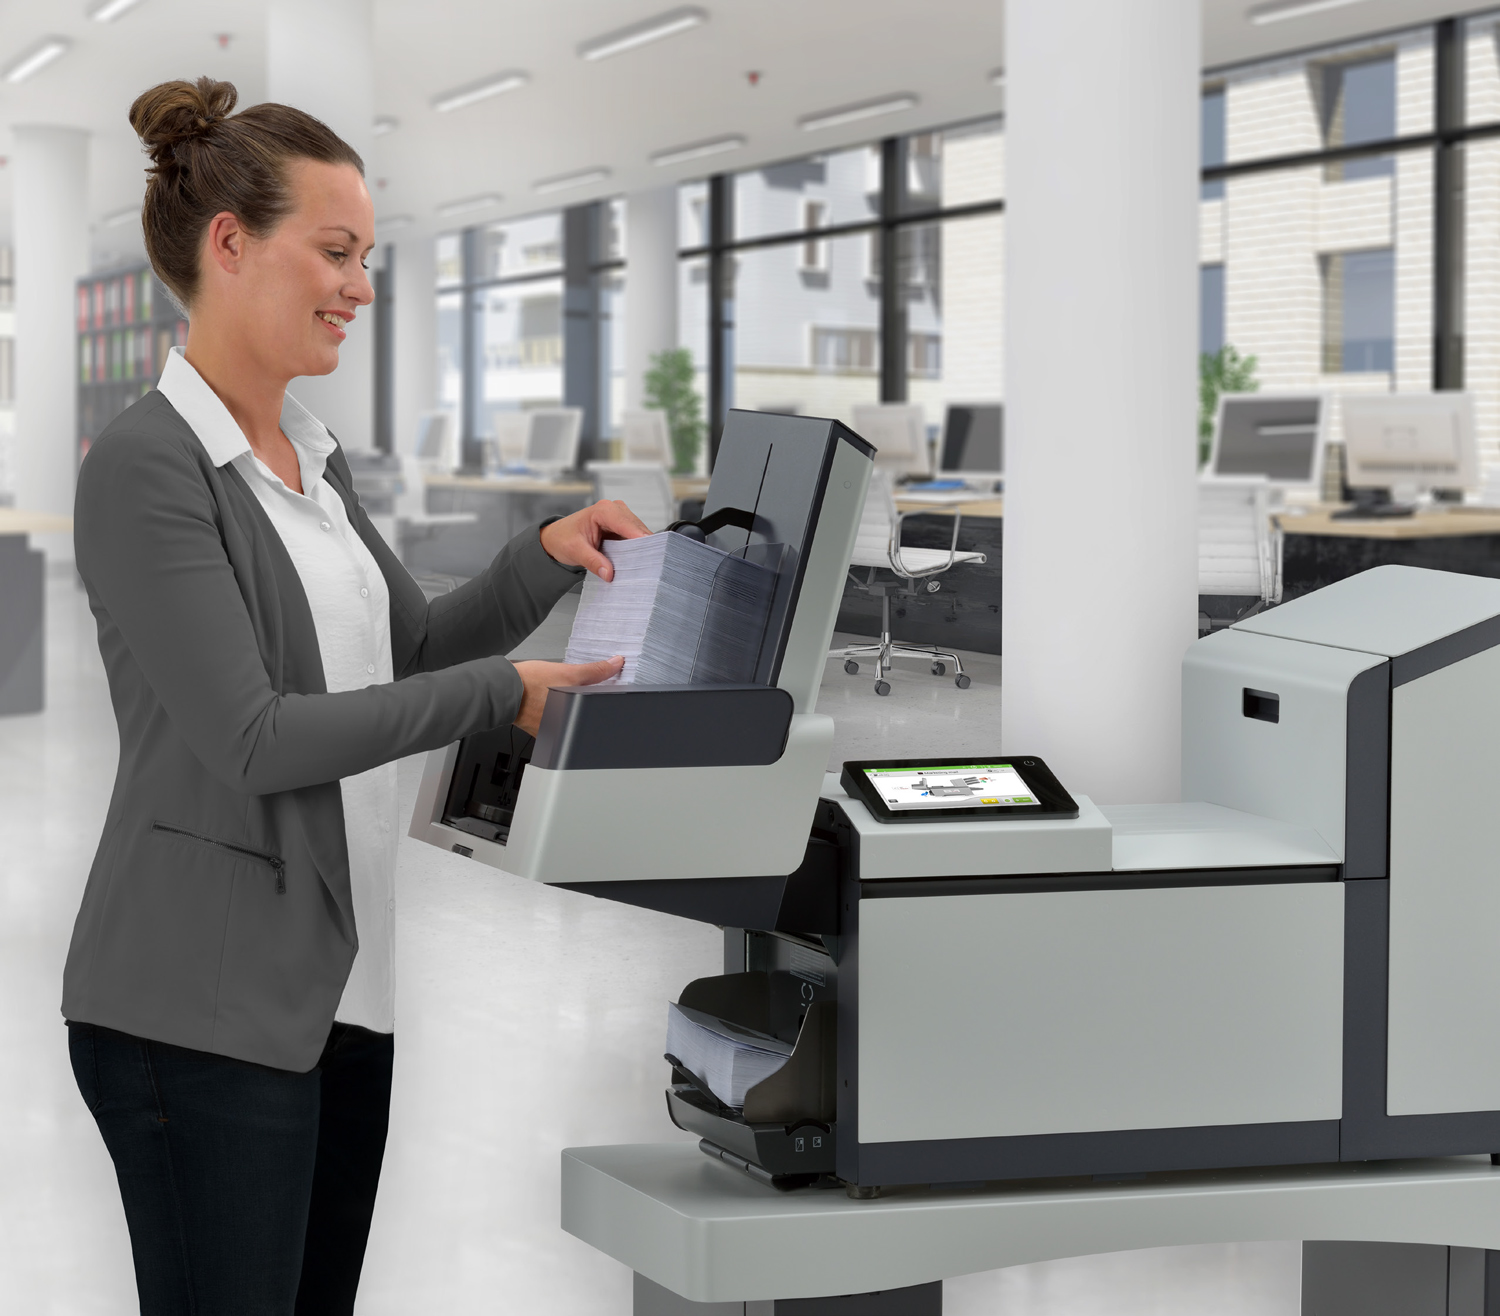 PRINTING & HANDLING SOLUTIONS - ✓Desktop & Multi-Function Printers✓Variable Data Printers✓Business-Class Document Management✓Paper Folding & Inserting✓Letter Openers✓Paper Shredders & Joggers